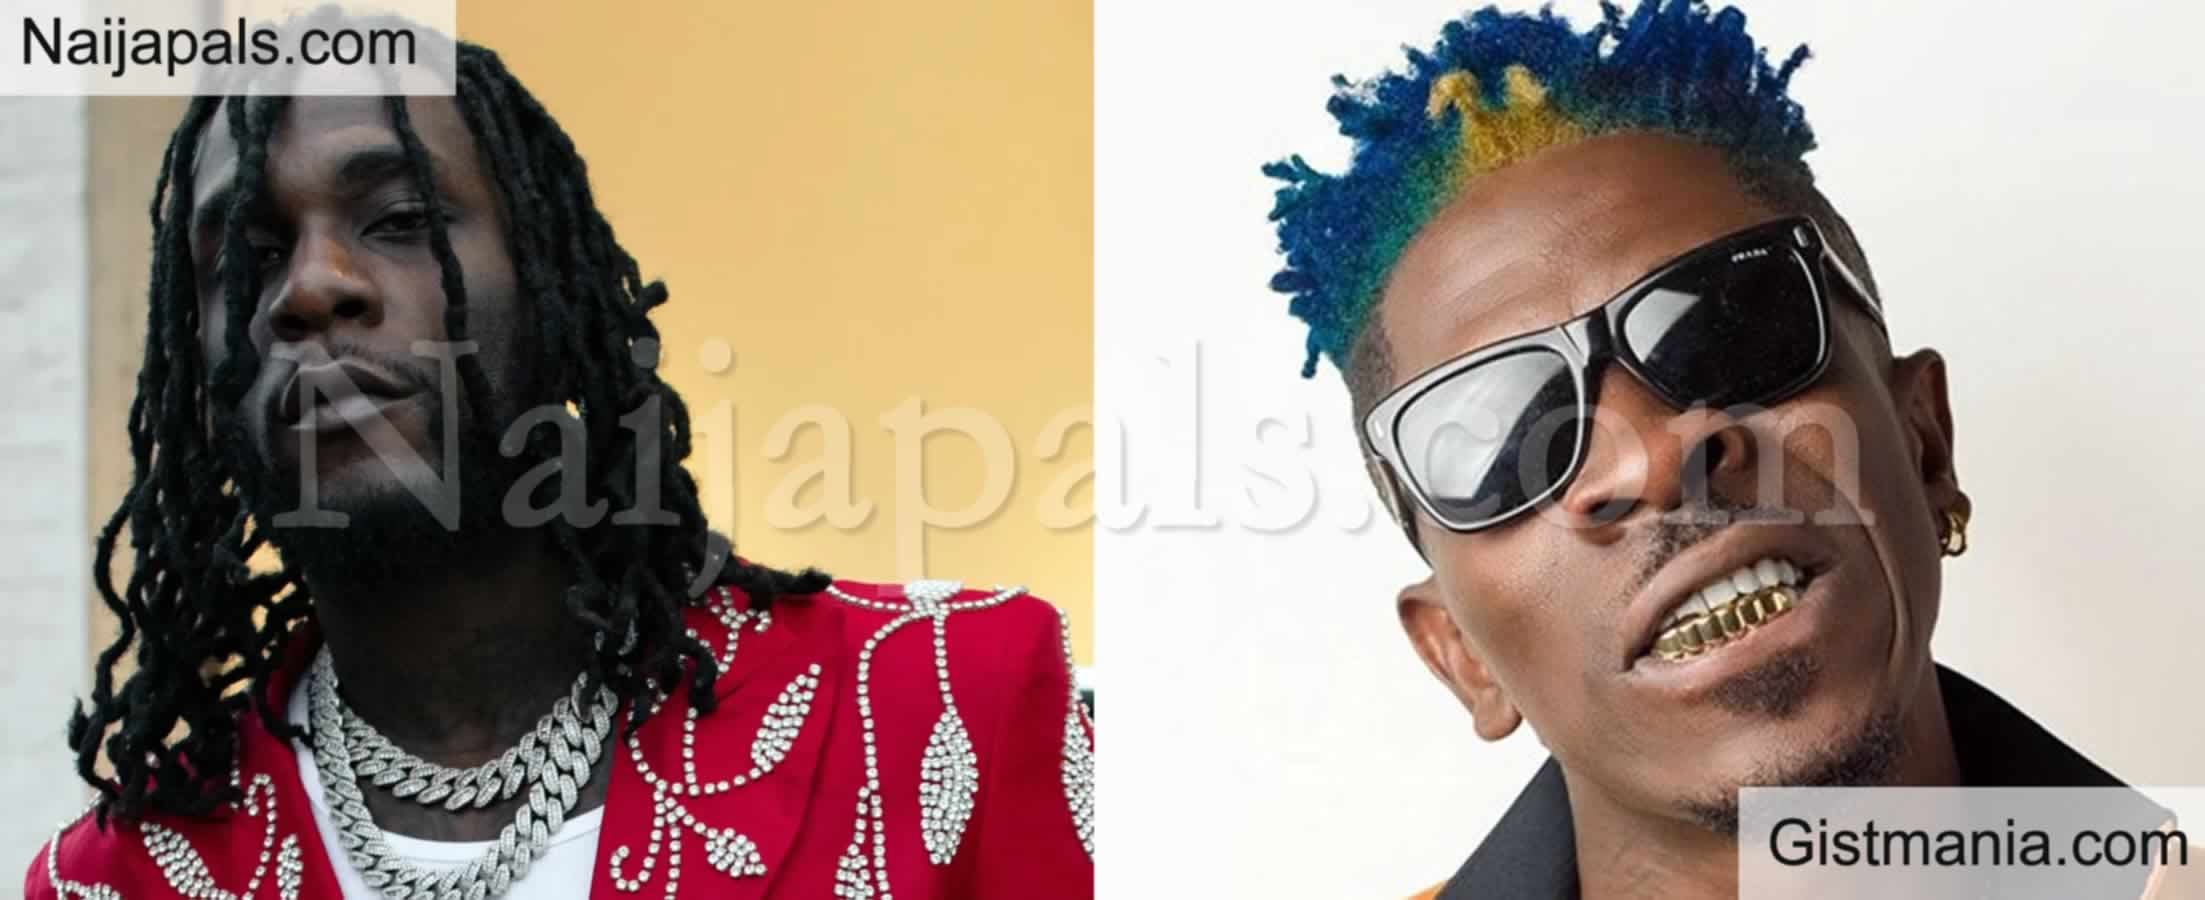 "<img alt='.' class='lazyload' data-src='https://img.gistmania.com/emot/video.gif' /> VIDEO: <b>""You Are a P Boy"" - Shatta Wale Blasts Burna Boy For Gossiping About Him In Ghana</b>"